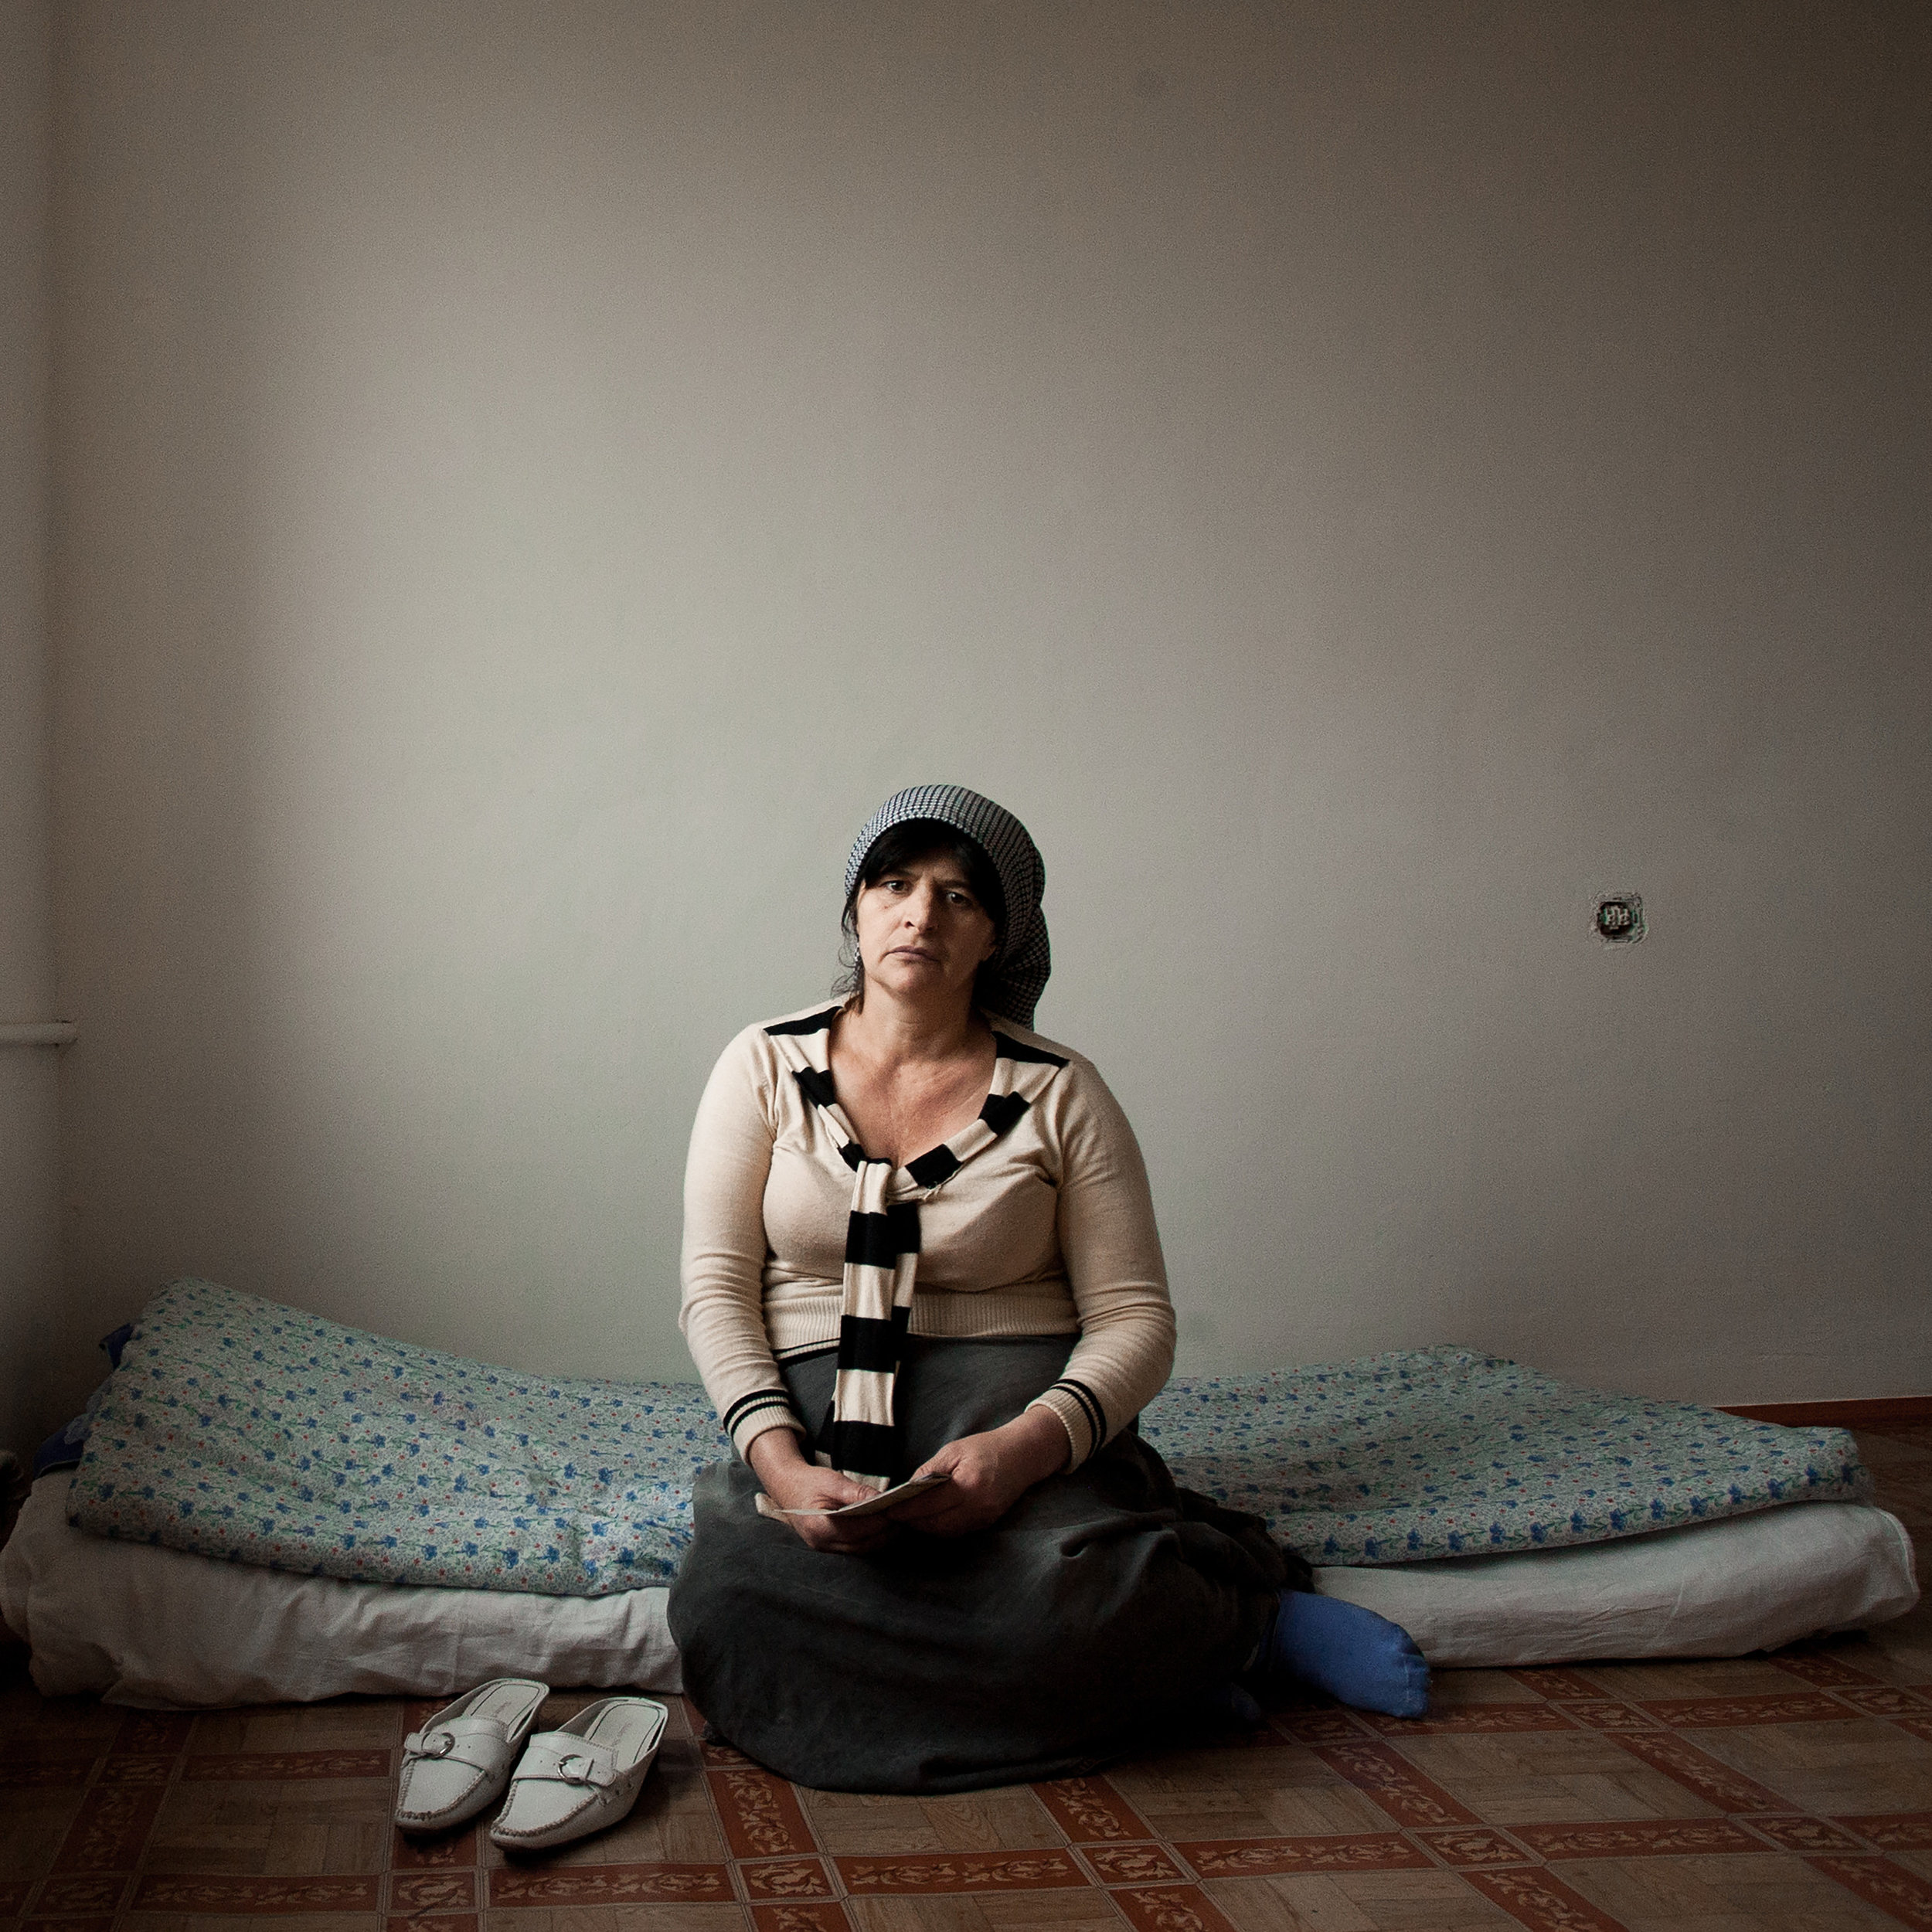 Russia, Chechnya, Grozny, 9 March 2010. Roza Vakayeva in her room in a dormitory for refugees